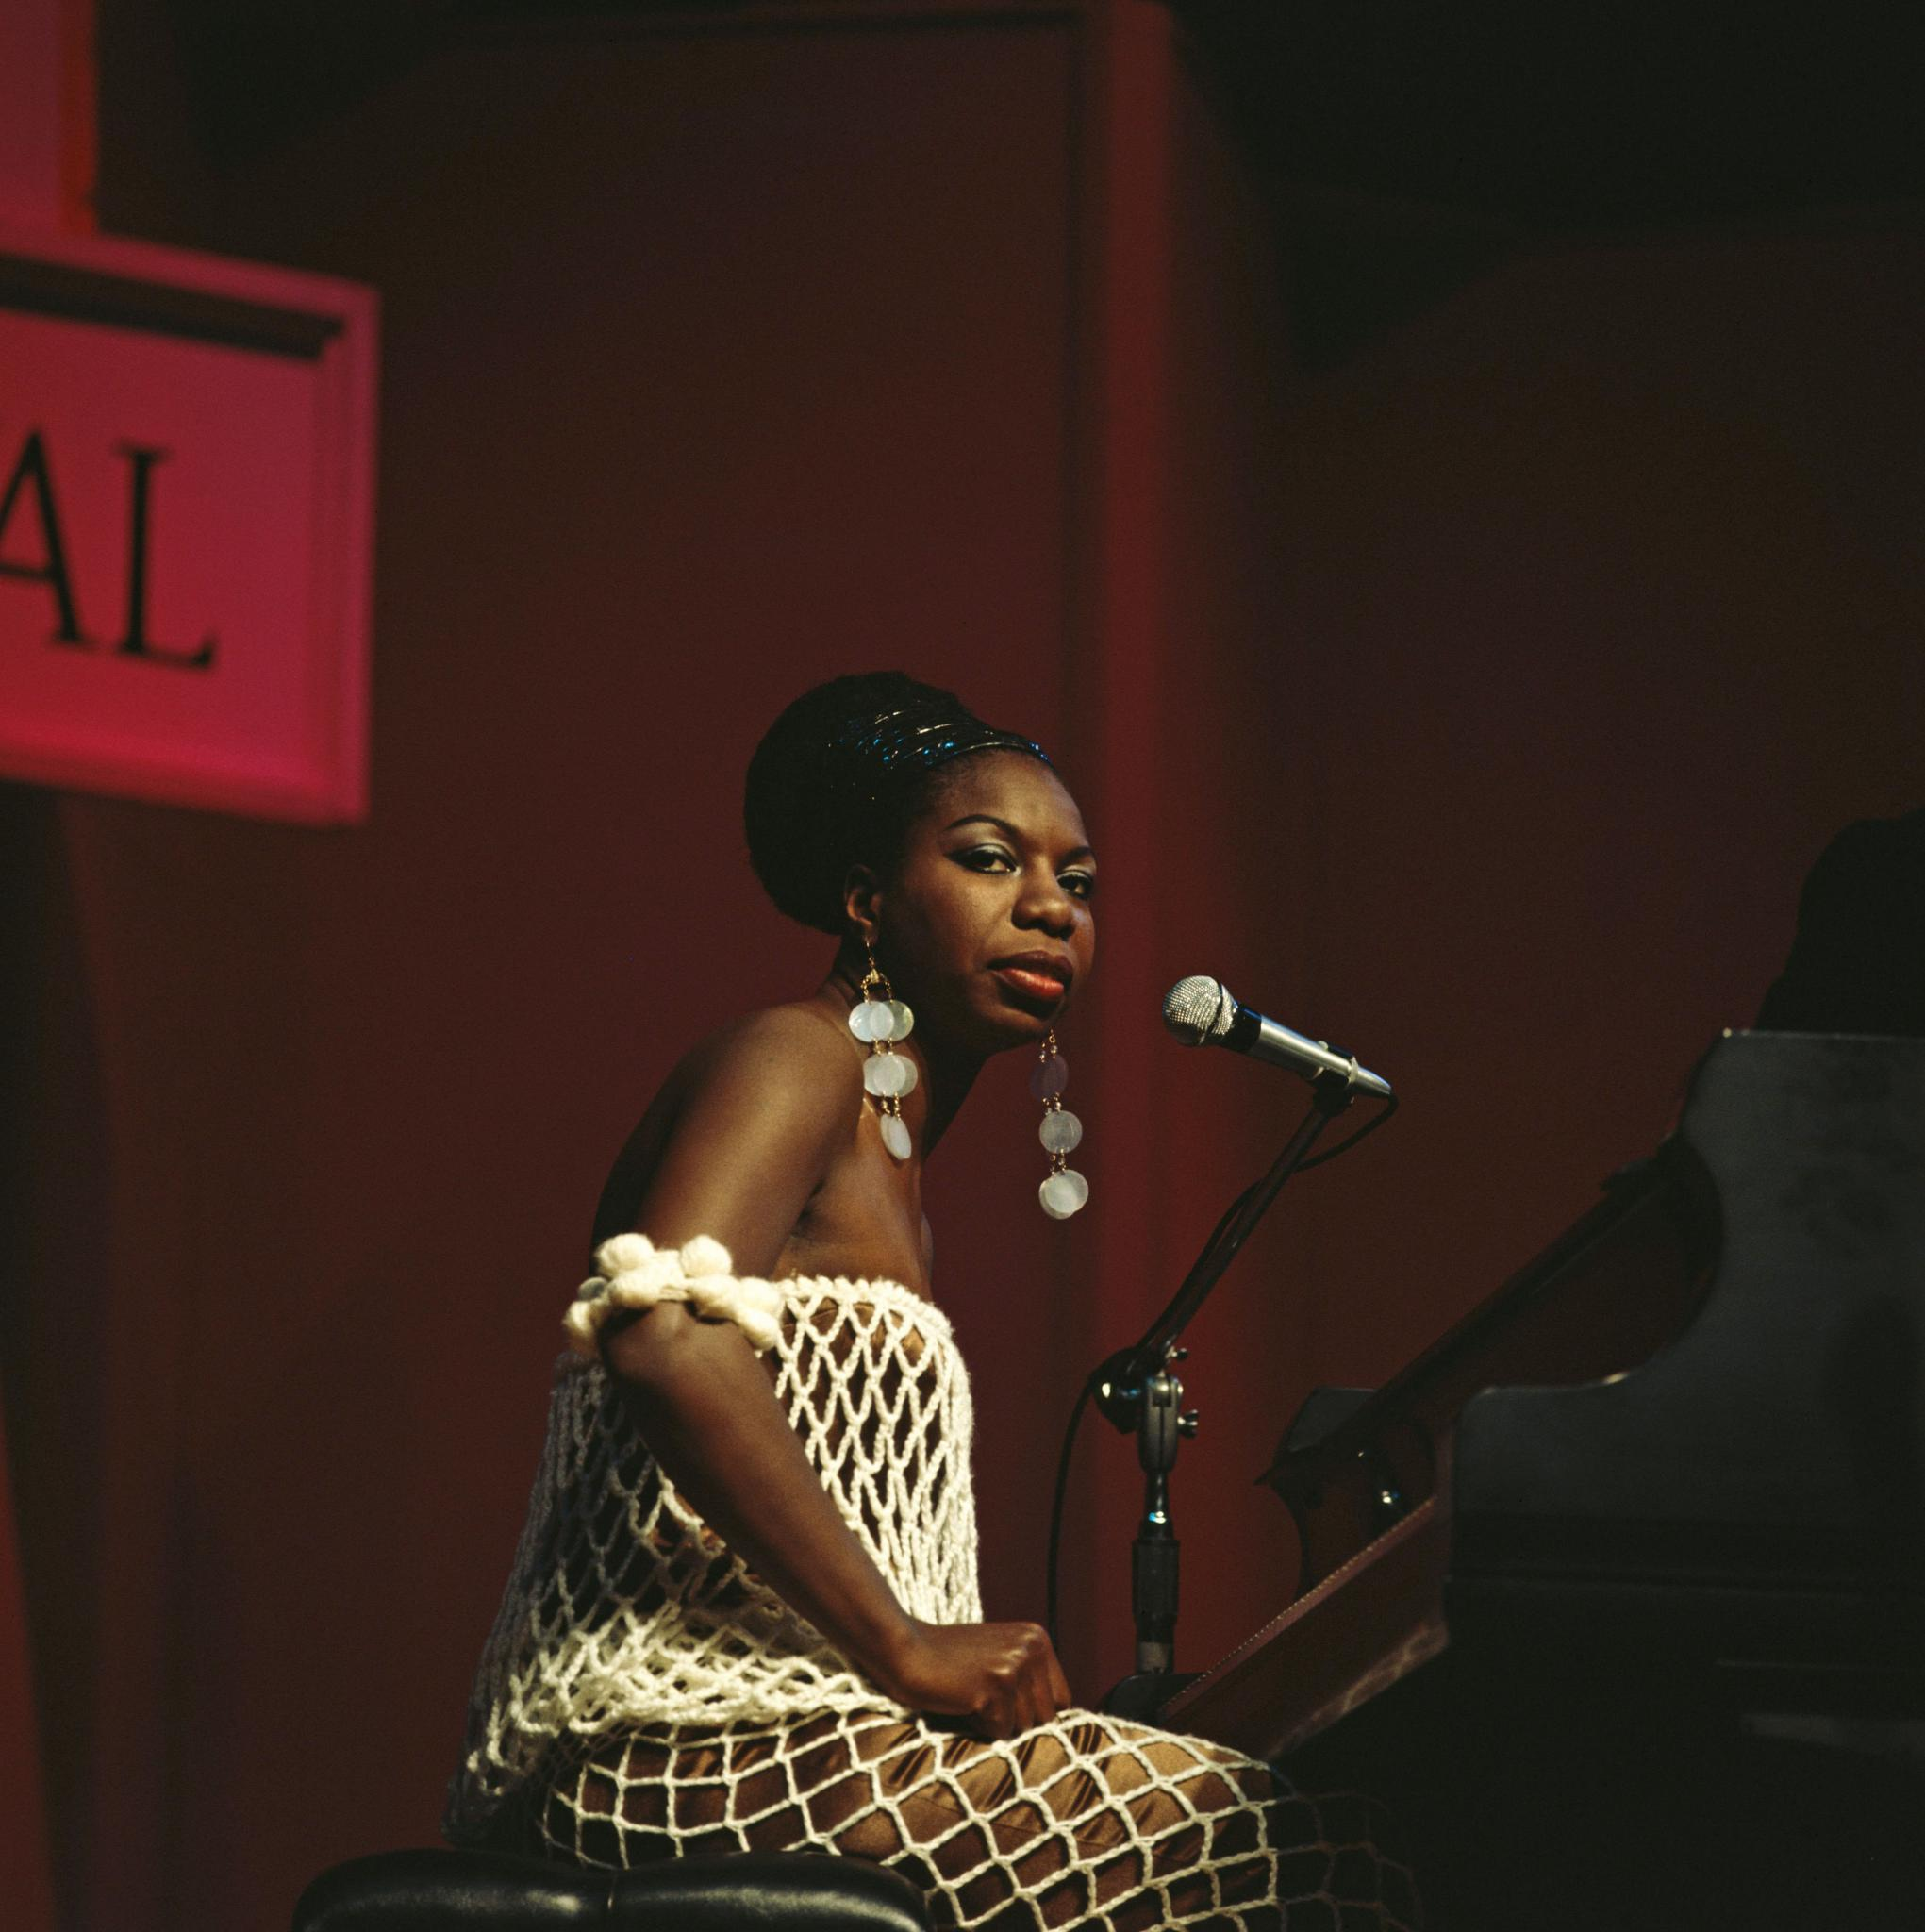 'I tell you what freedom is to me: no fear' Nina Simone https://t.co/oyPib7iZth